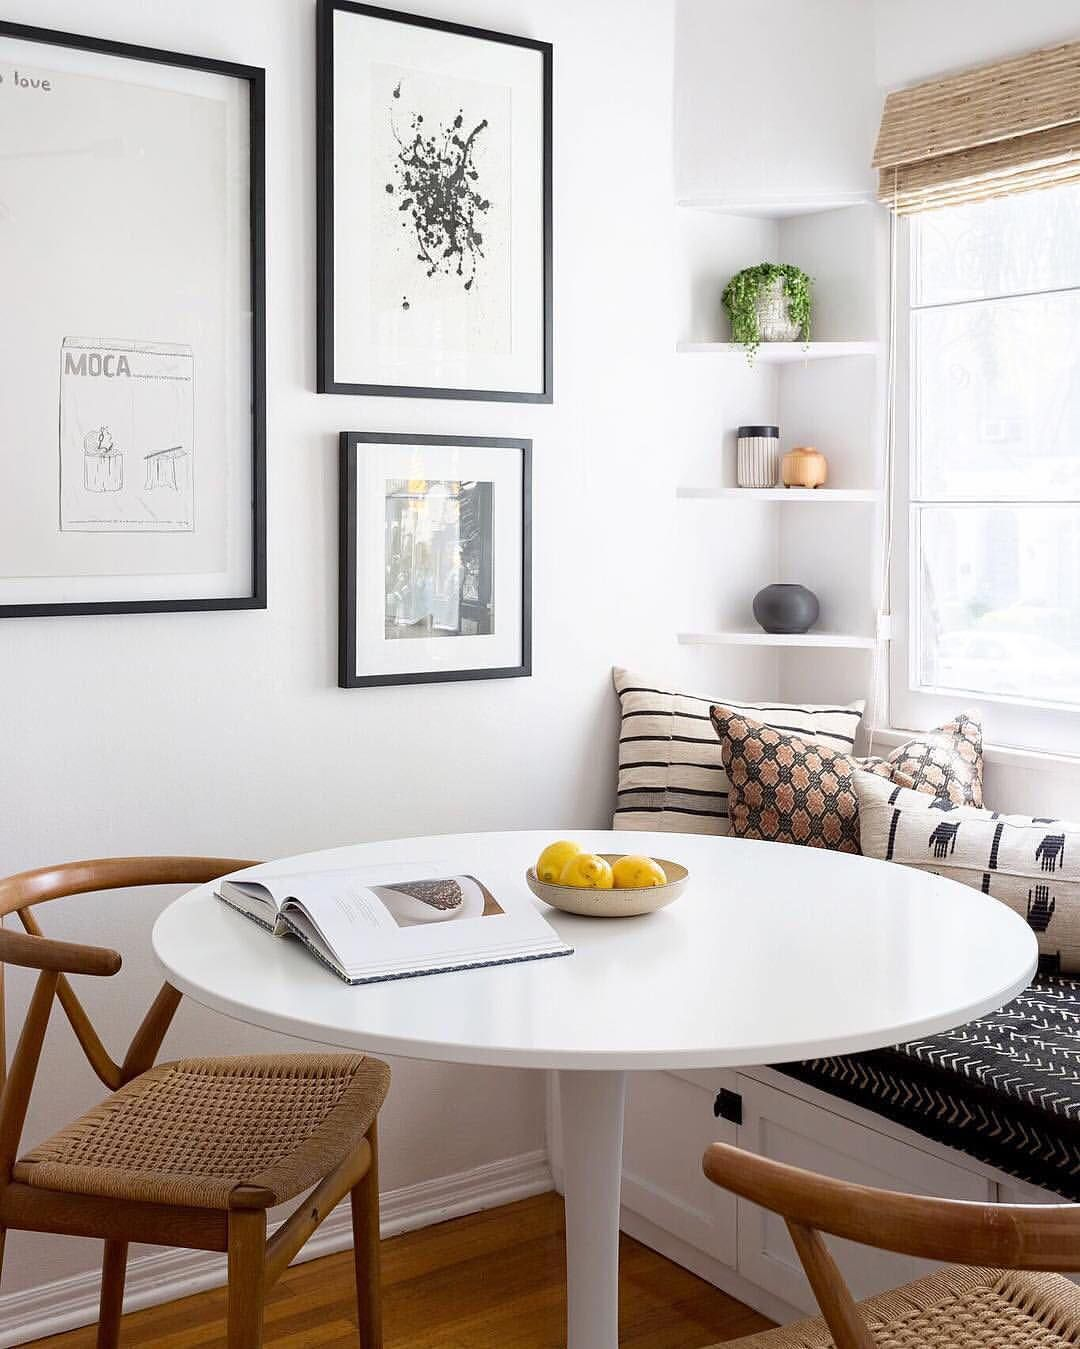 Love Overall Style Love The Table And Chairs And Gallery Wall